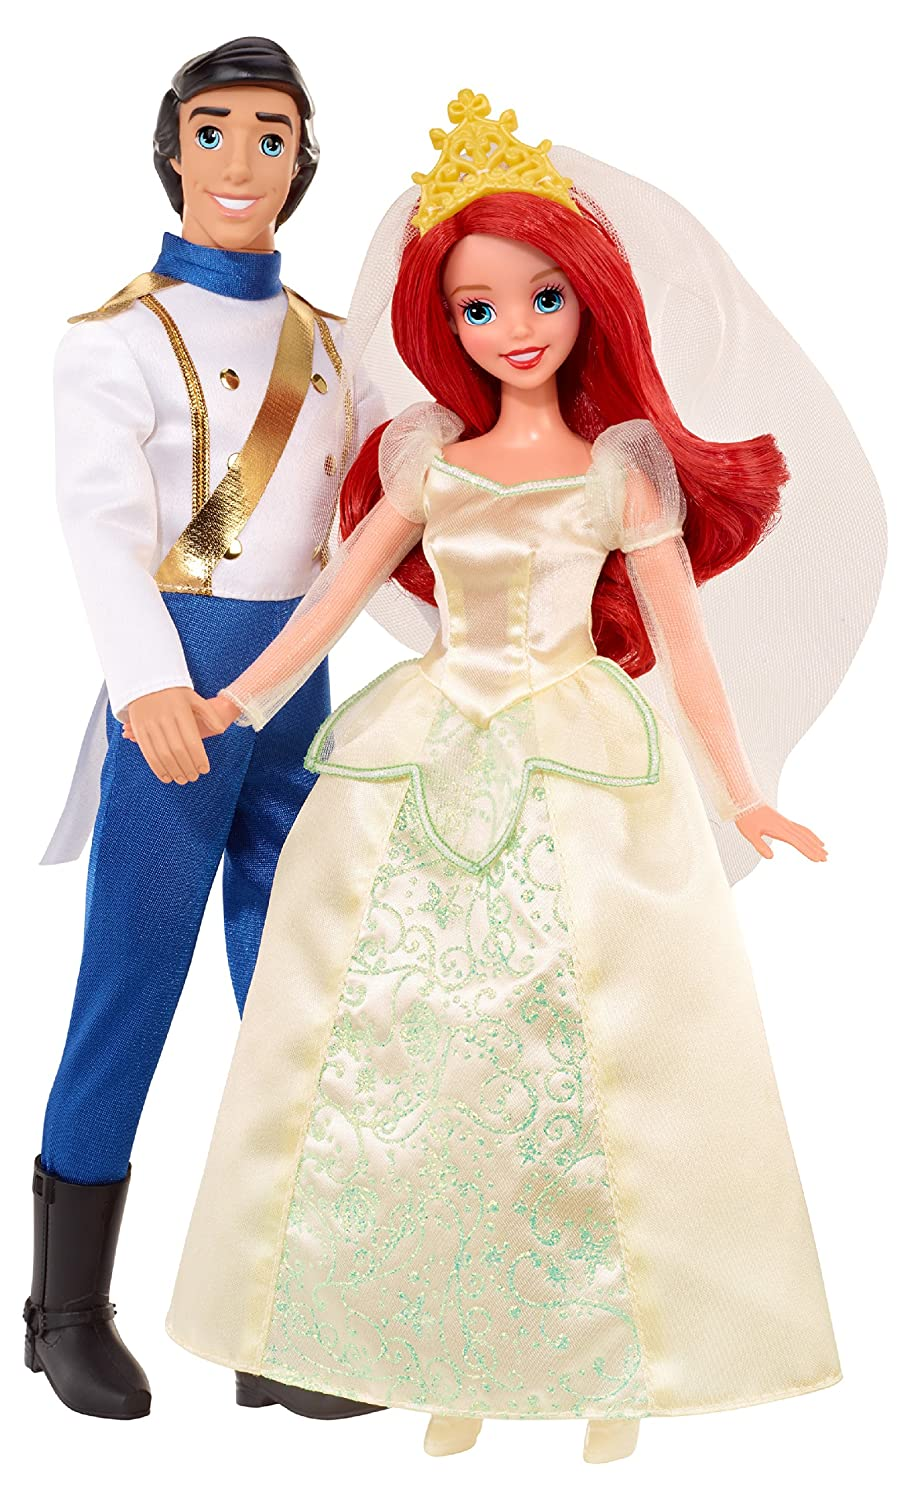 Amazon.com: Disney Princess The Little Mermaid Ariel and Eric ...